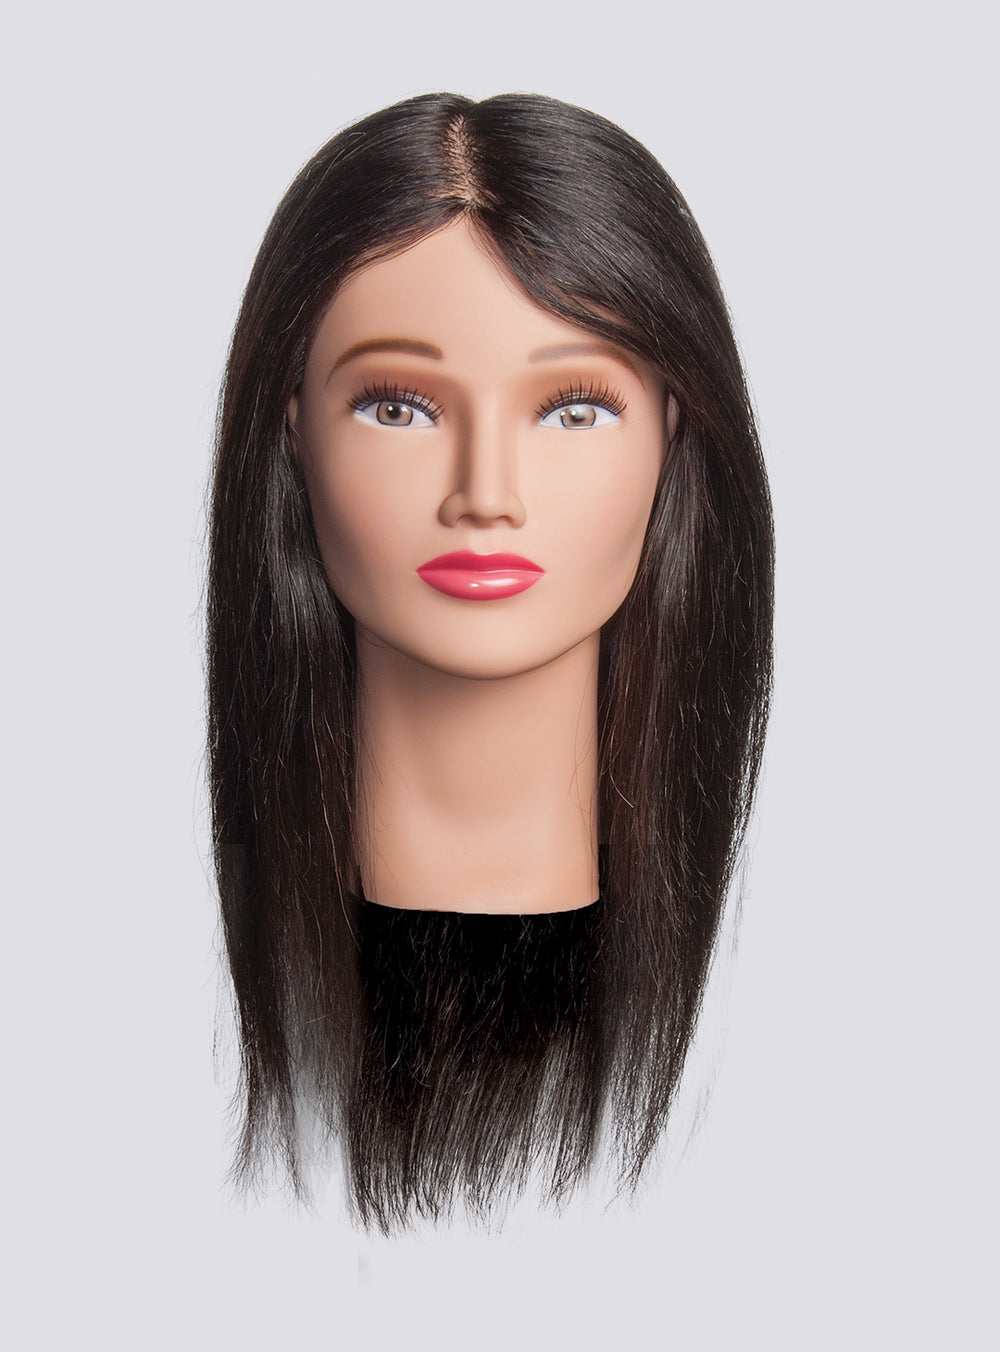 Fromm Pro Professional Salon 100% Human Hair Nora Mannequin Head